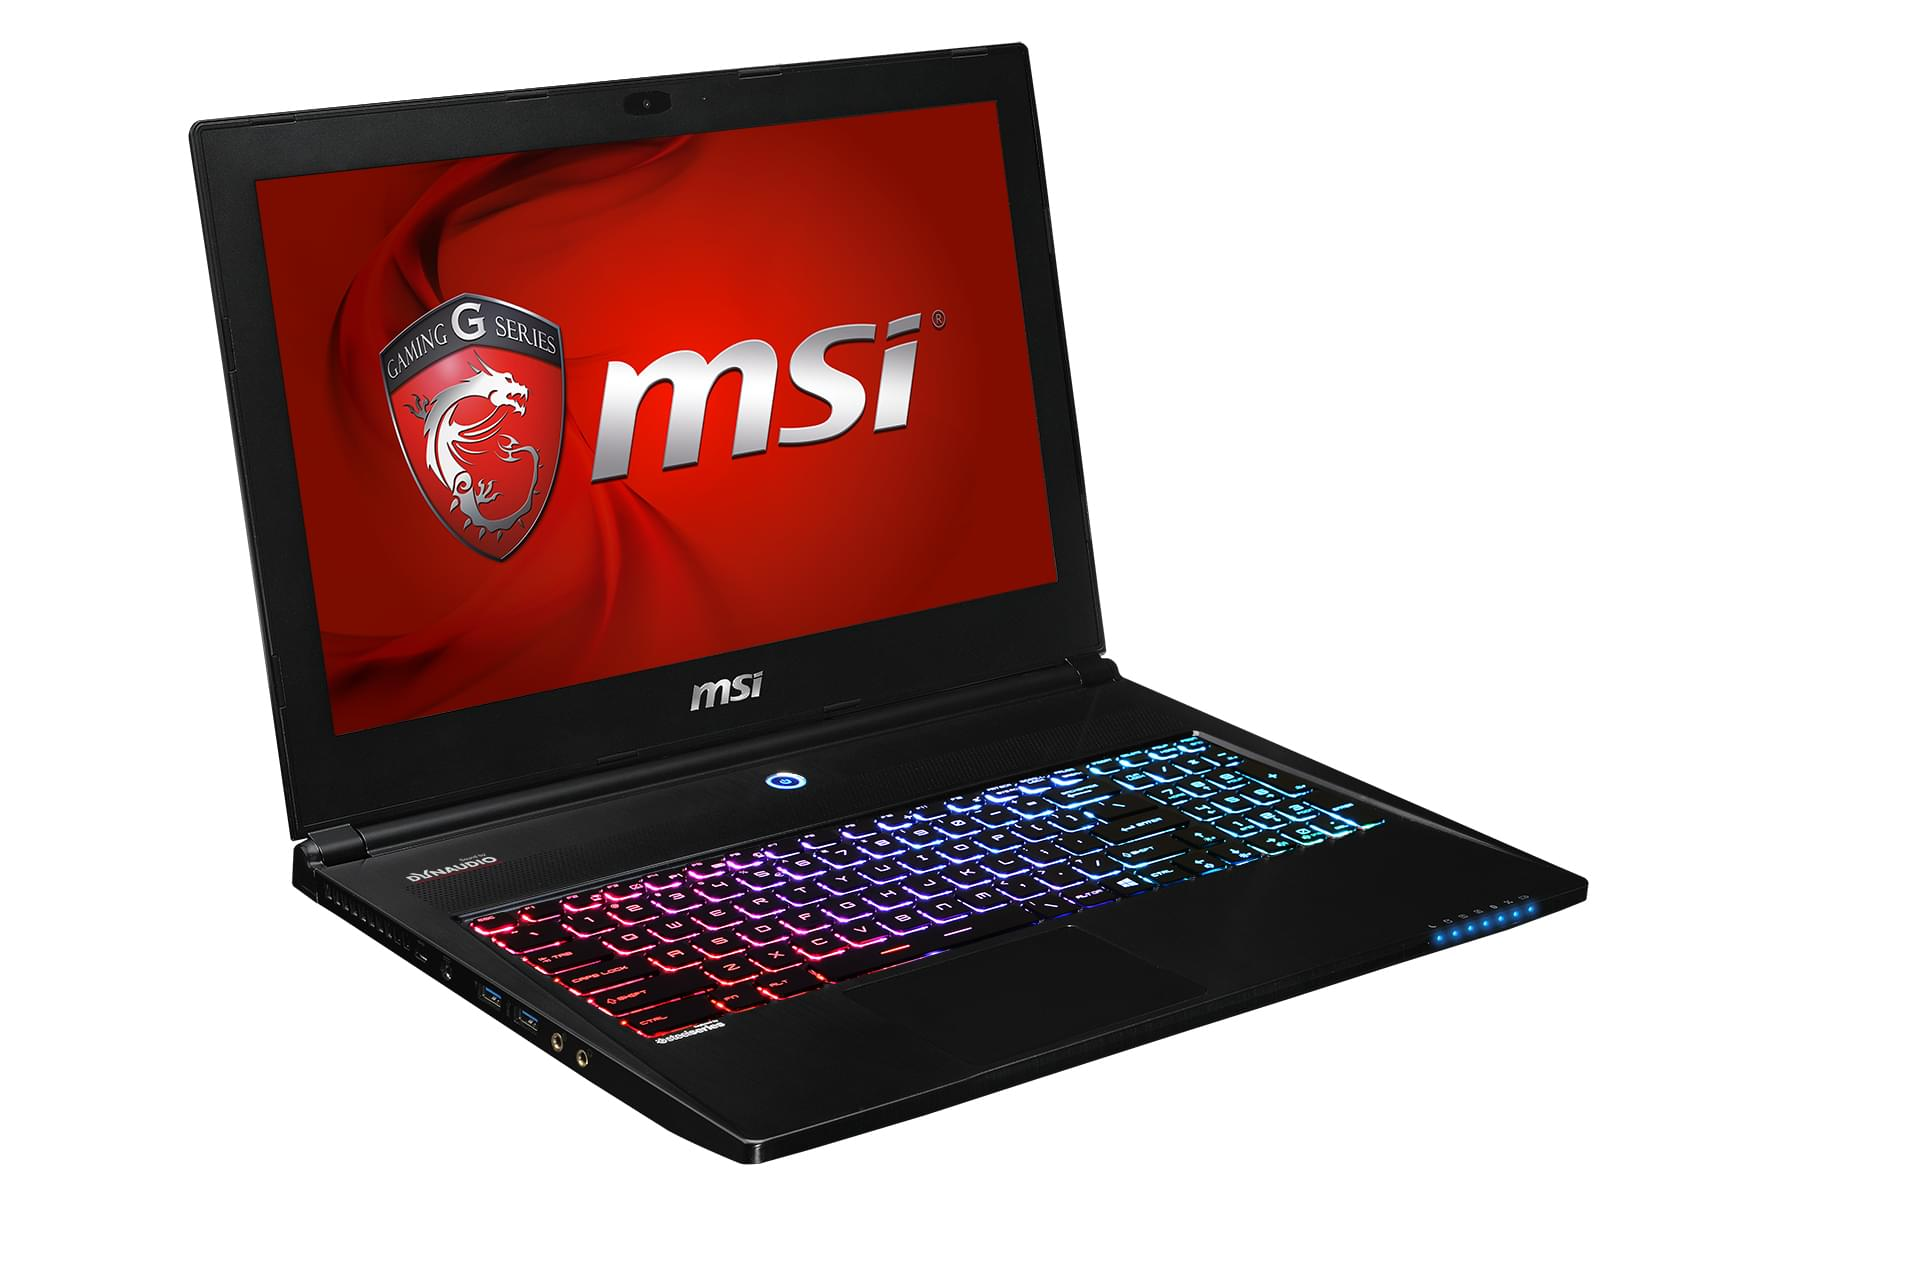 MSI 9S7-16H212-247 - PC portable MSI - Cybertek.fr - 0